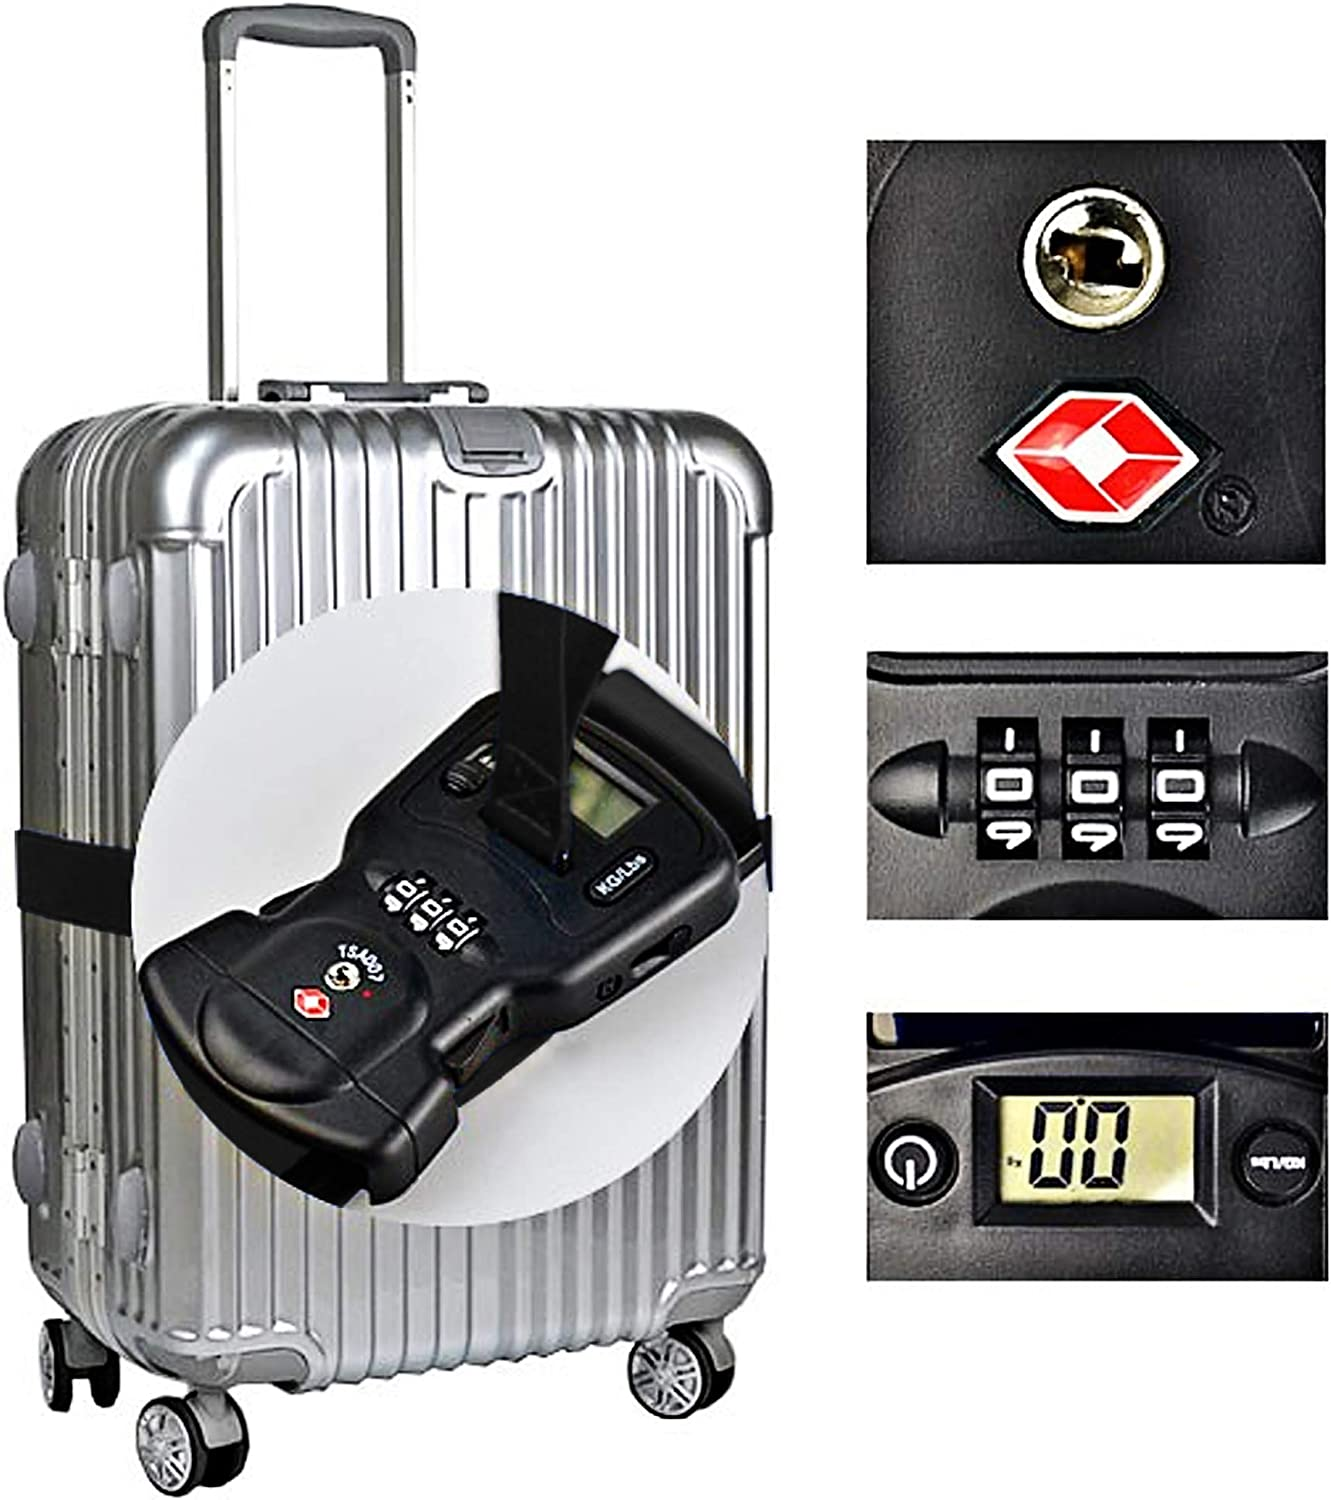 3-in-1 Travel Luggage Bag Strap with TSA Lock and Digital Scale. Pride Rainbow